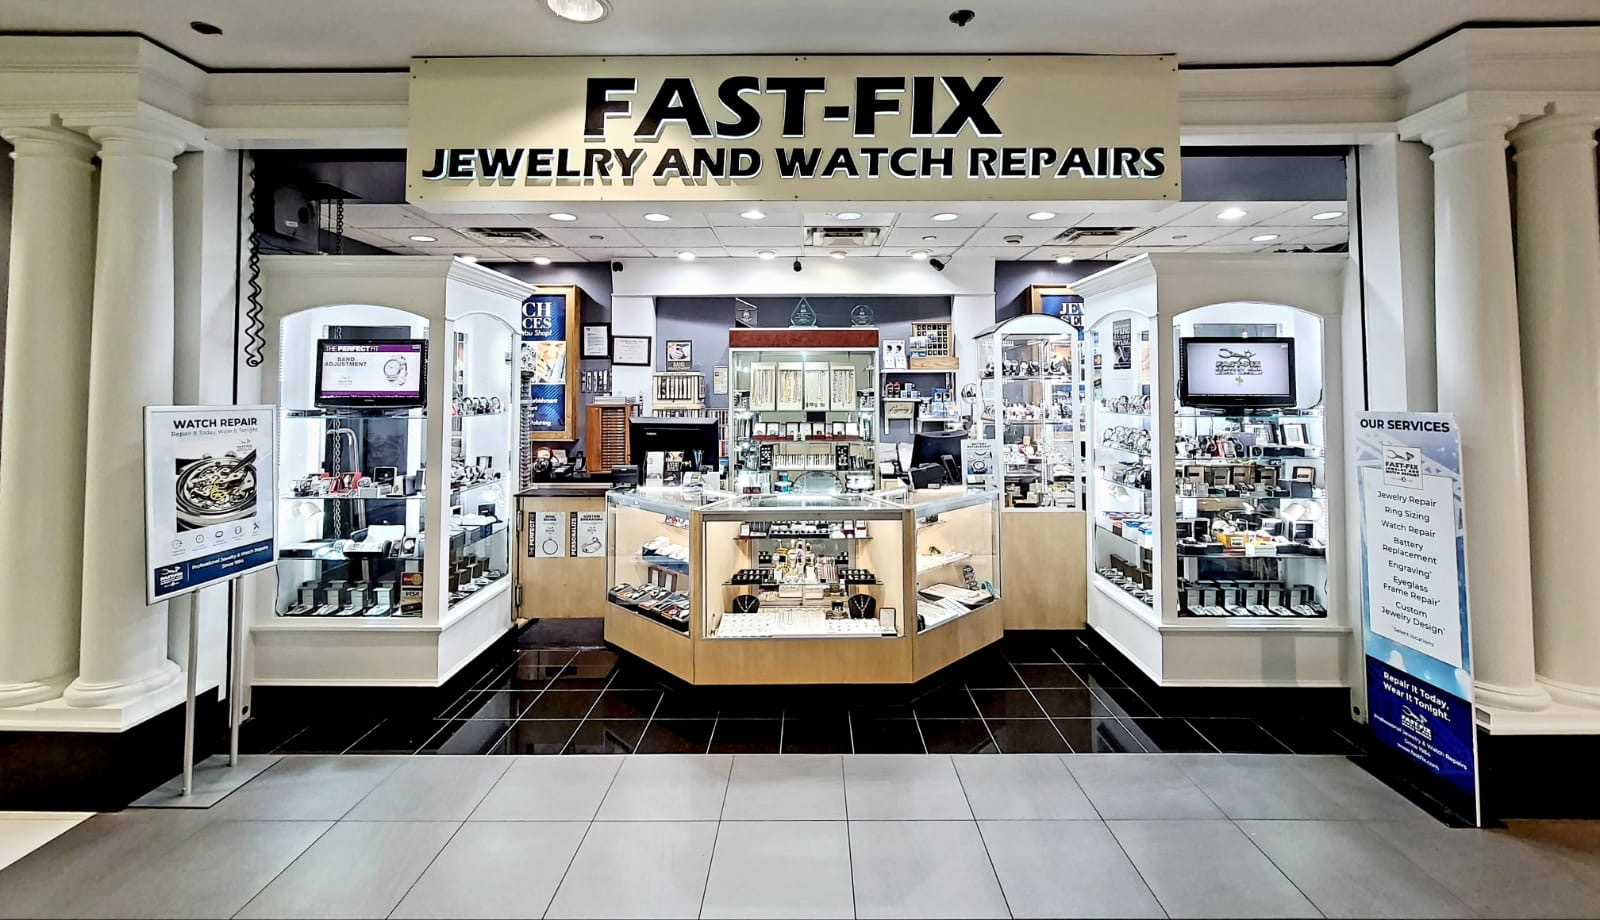 Fast-Fix Jewelry and Watch Repairs Pentagon City Storefront